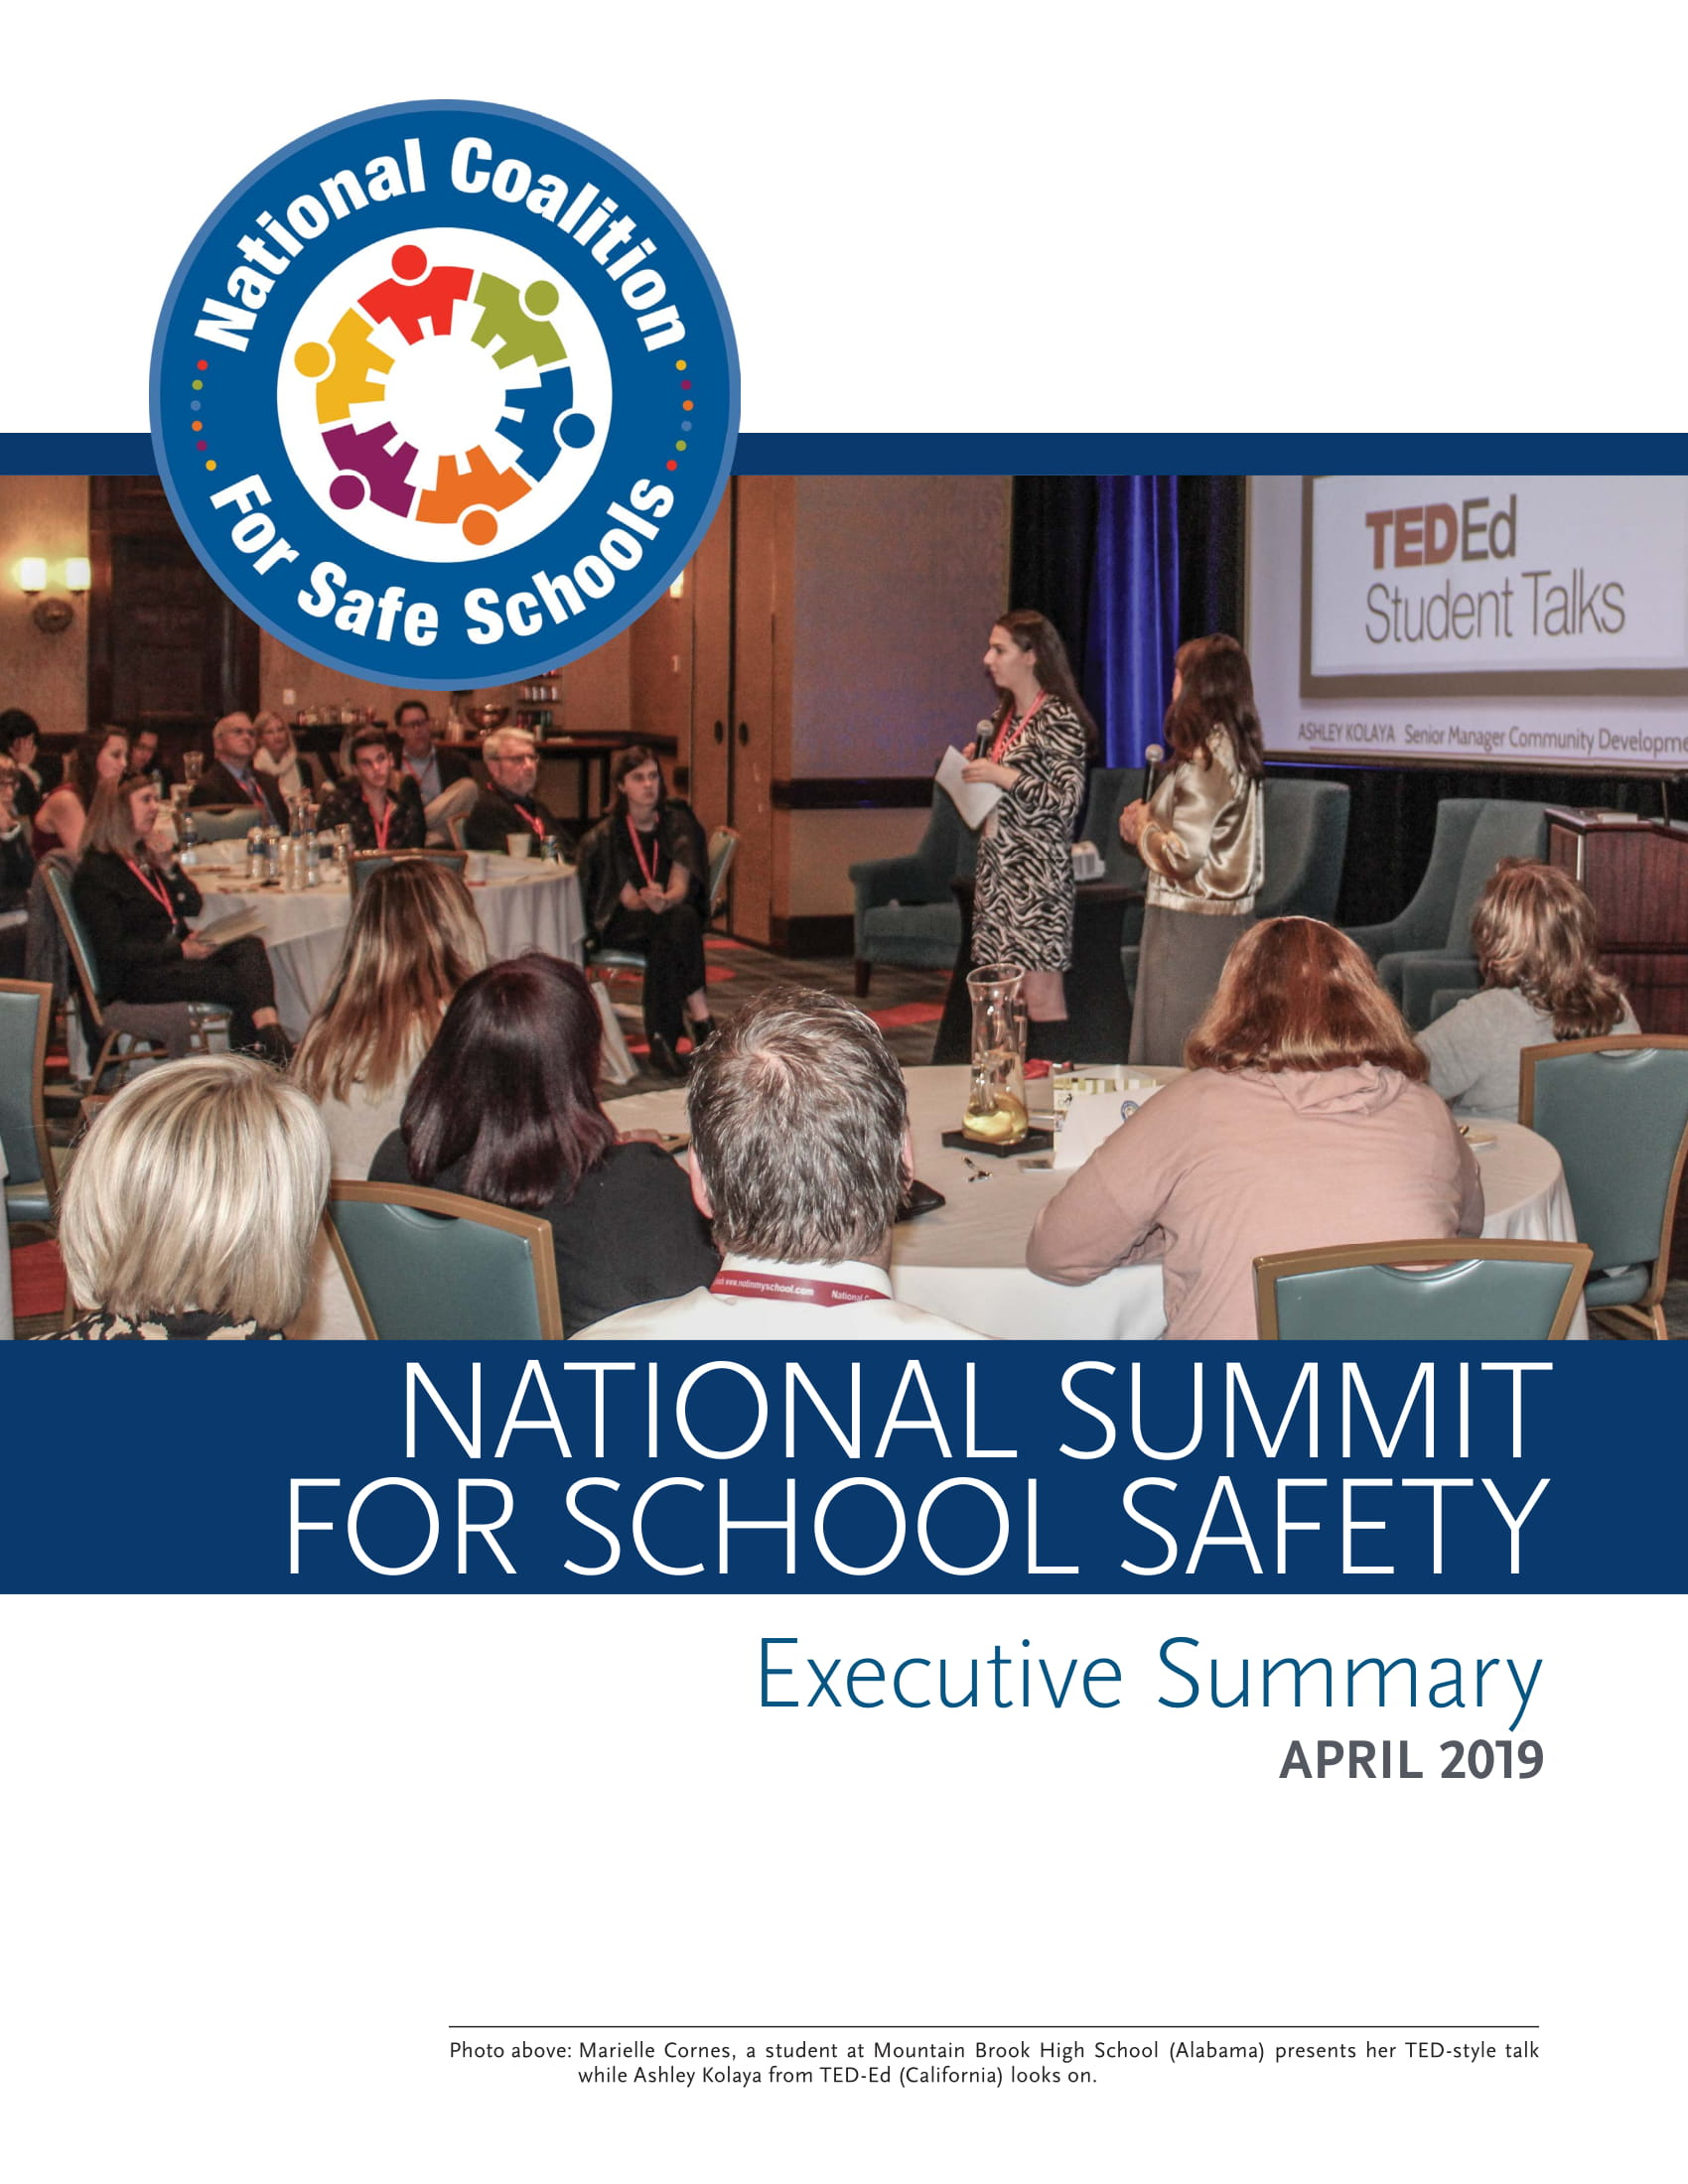 Executive Summary - This document provides a summary of the Coalition's formation and guiding principles. It contains immediate steps students and staff can take to create safer schools, as well as testimonials from the Coalition's inaugural Summit on School Safety.